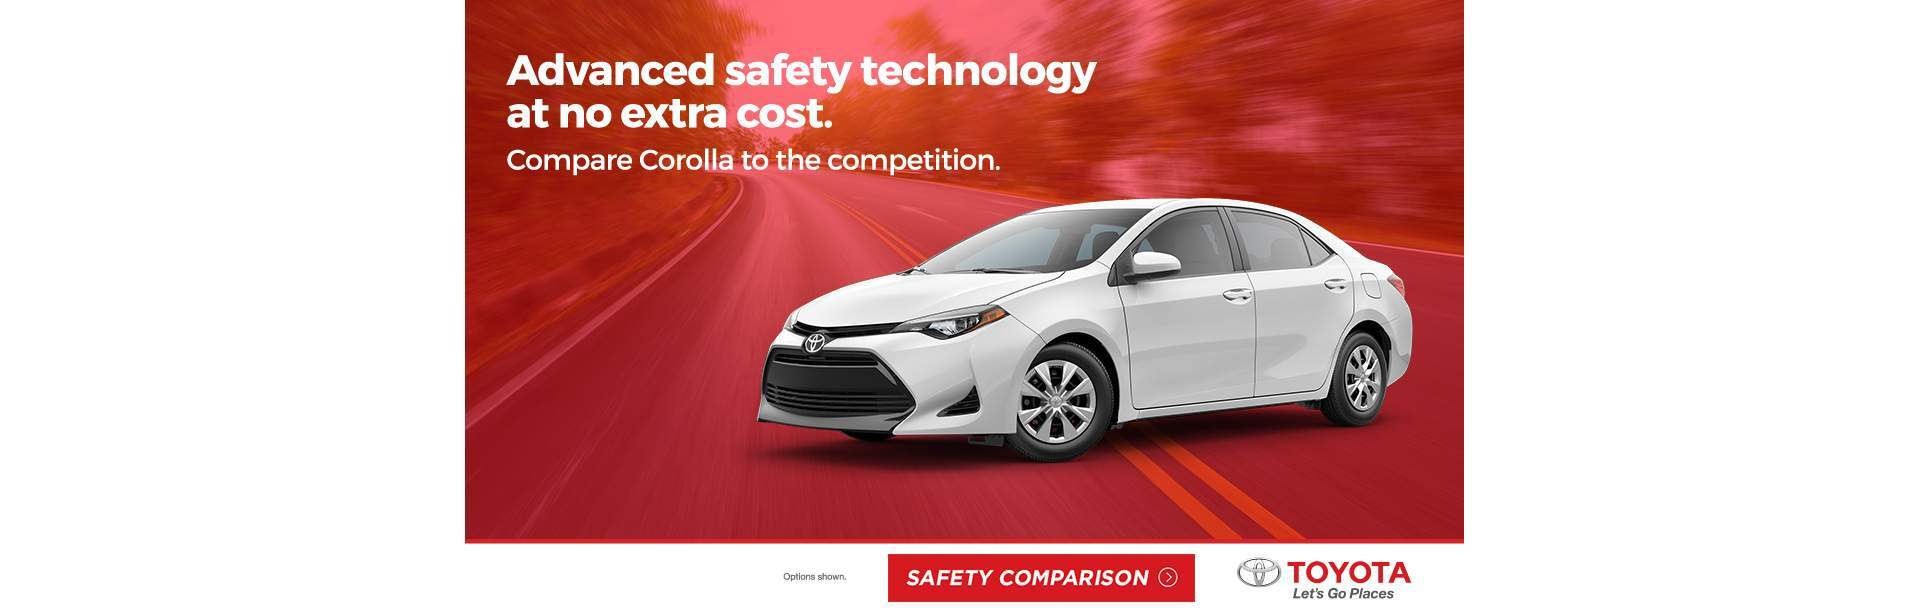 Safety Tech Corolla